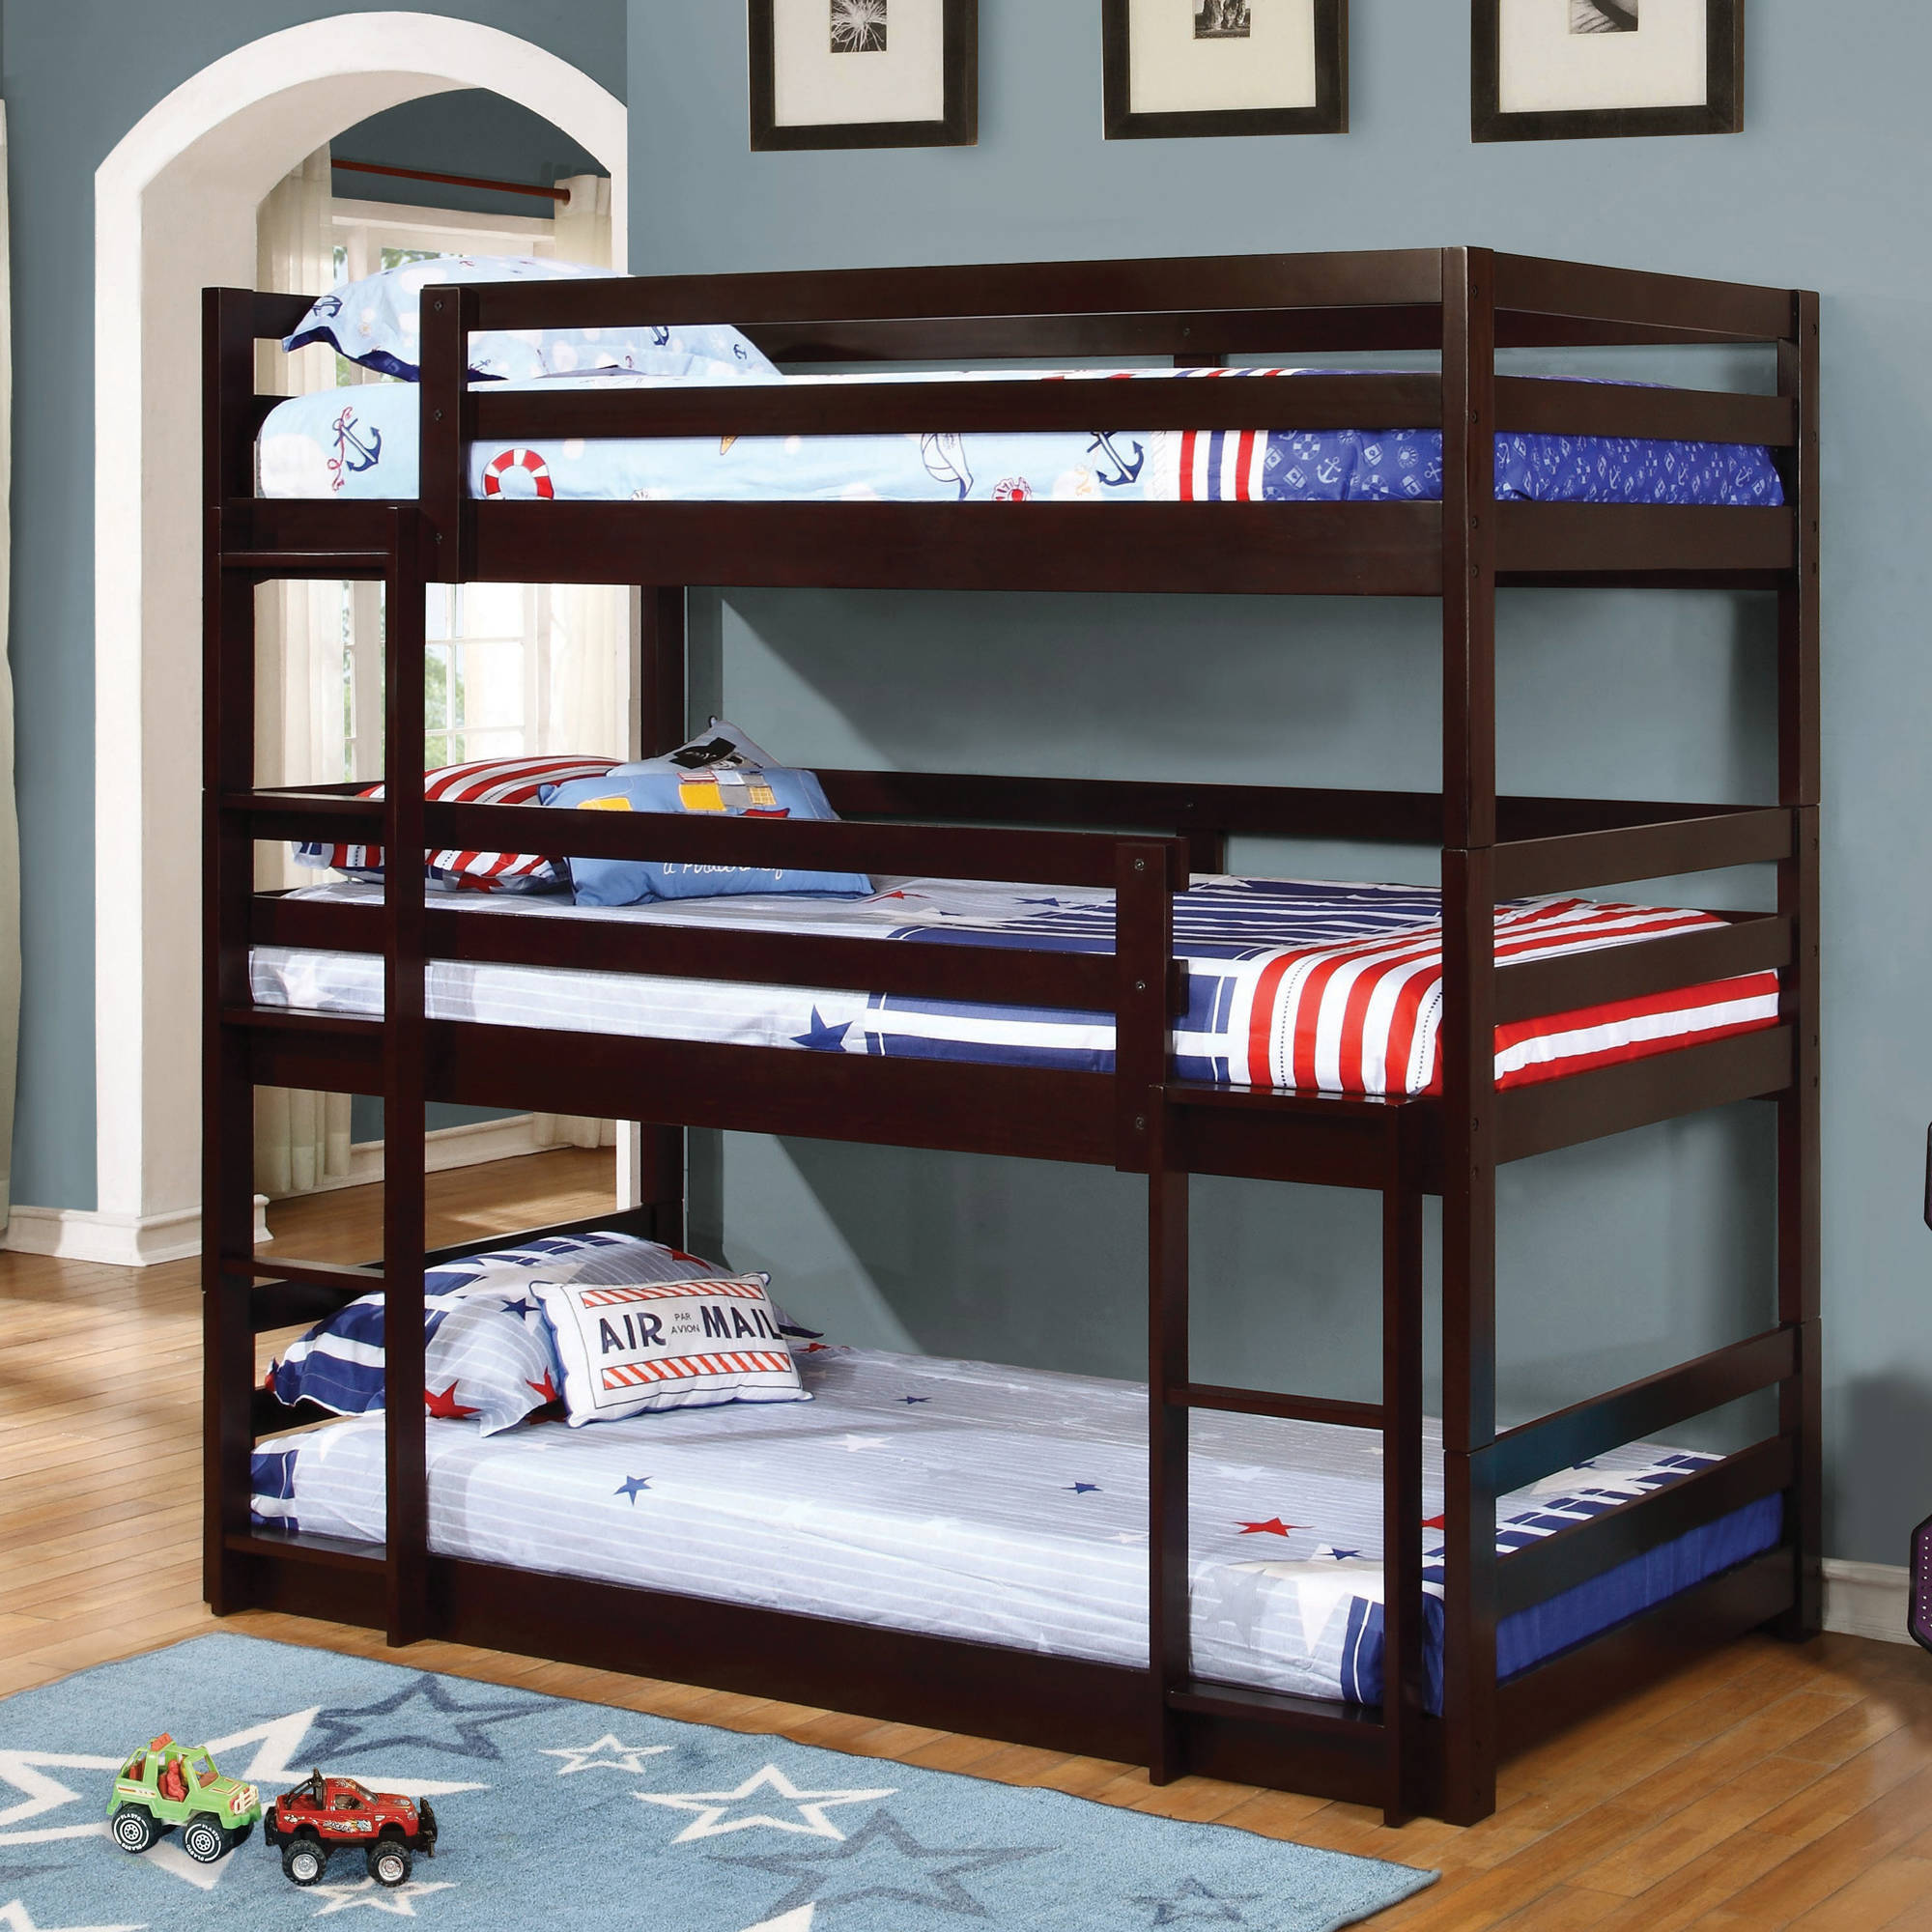 Coaster Furniture Triple Twin Wood Bunk Bed, Cappuccino, Box 1 of 3 by Coaster Company